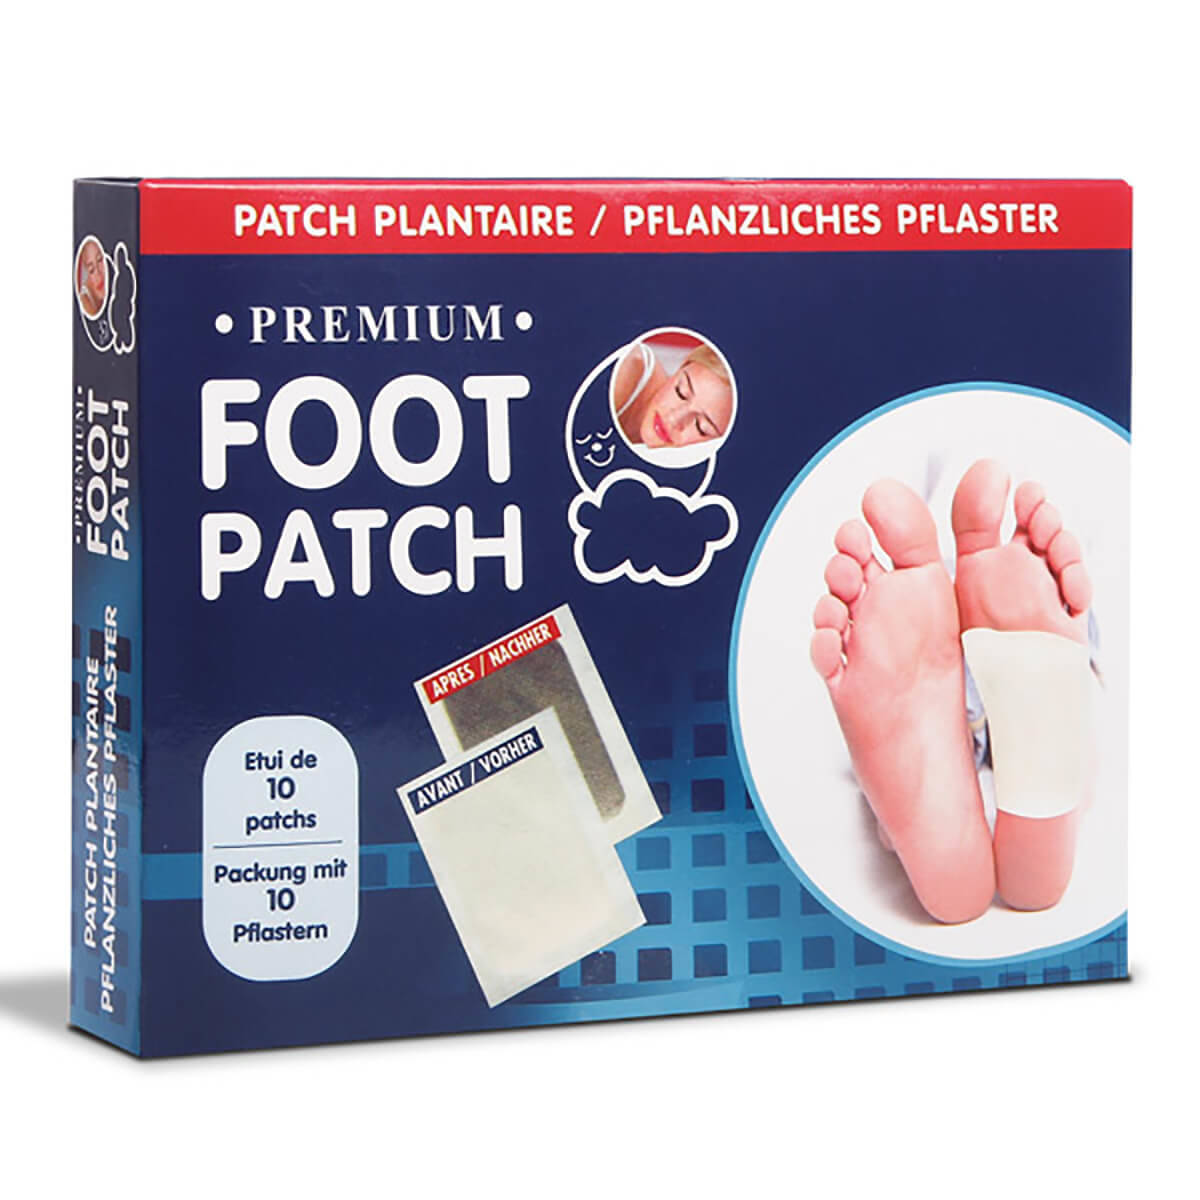 Premium Foot Patch 1 Packung